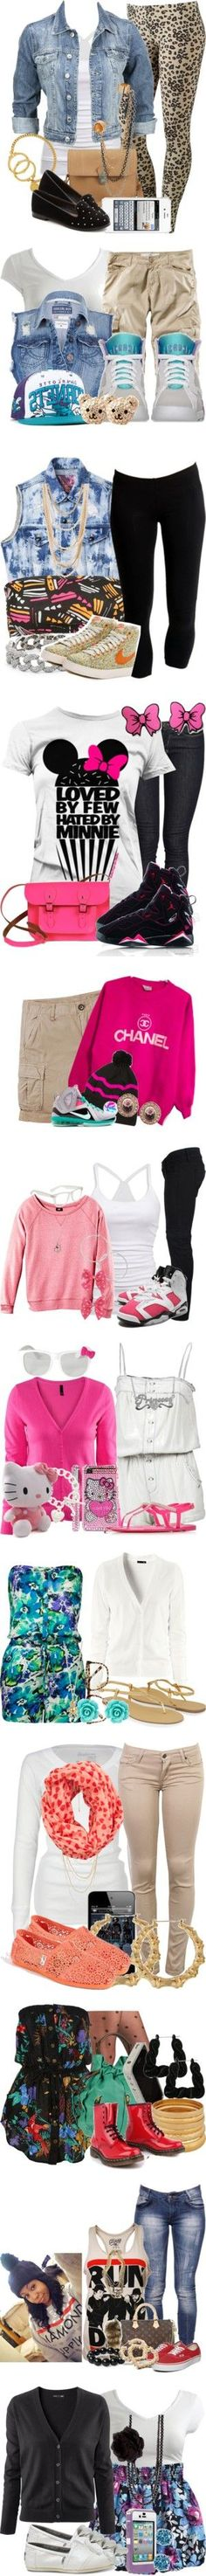 Cute outfits nd clothes ideas